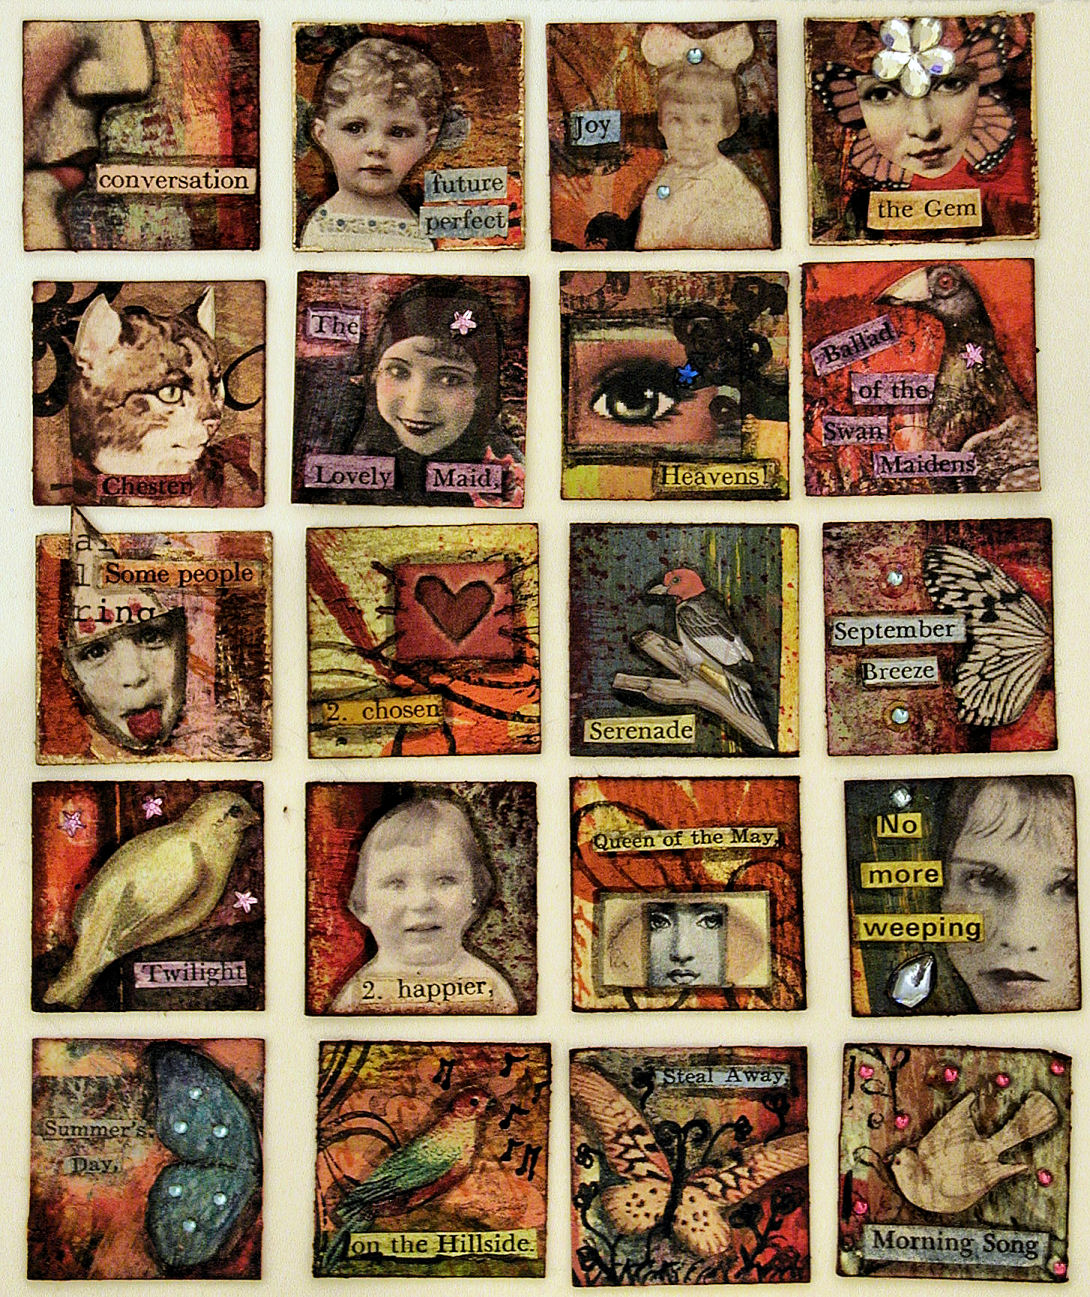 Batch 3 of the 100 mixed-media inchies swap -© Christy Hydeck in Raleigh, North Carolina